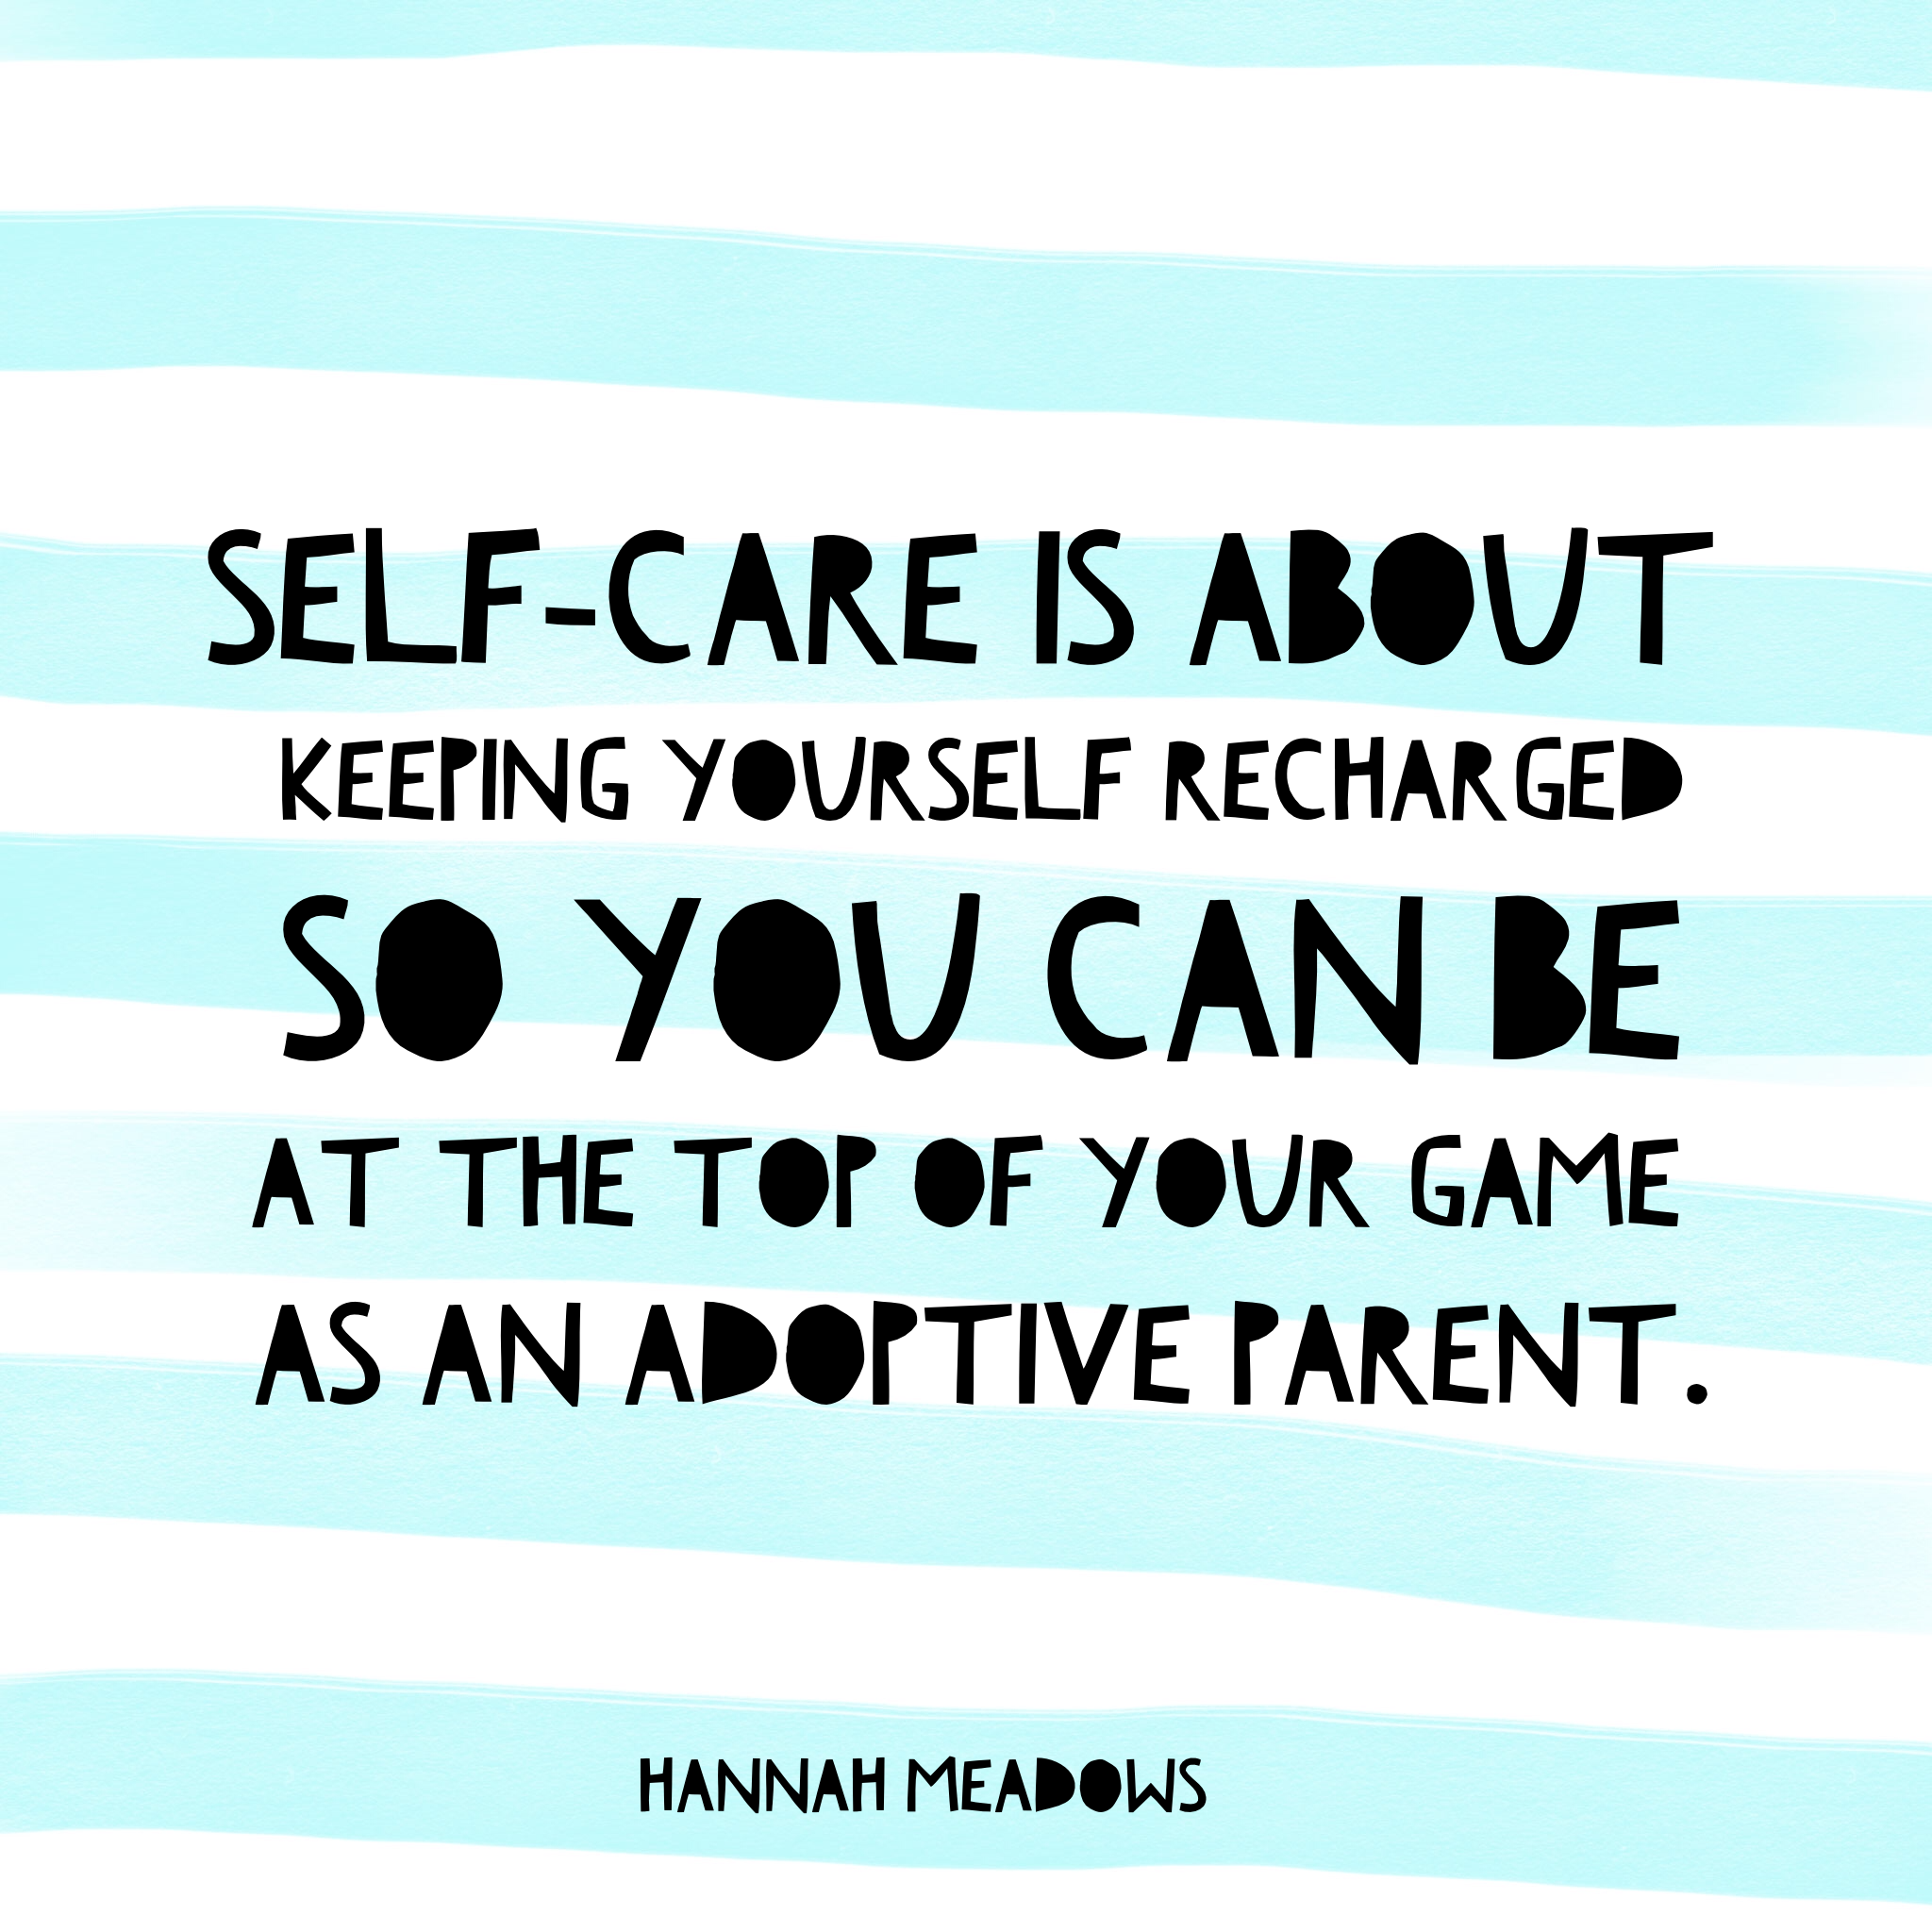 Self-care isn't selfish. How are you recharging yourself this week? https://hannahmeadows.com/2015/04/26/10-easy-ways-to-practise-self-care/ #selfcare